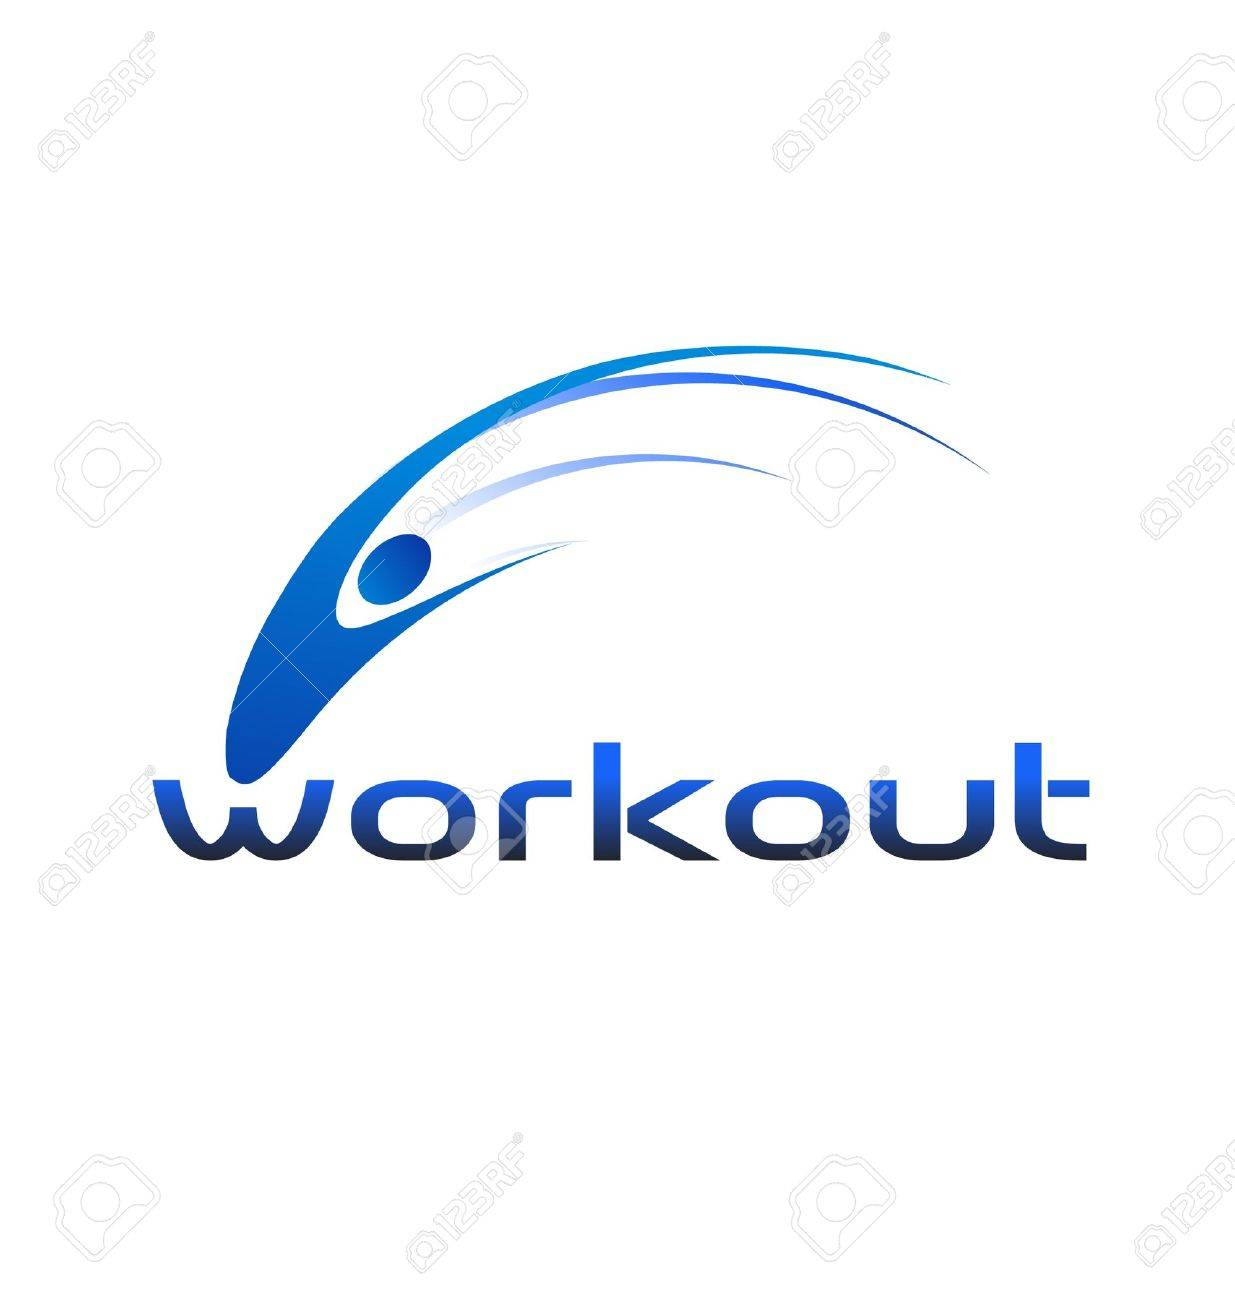 people workout swoosh logo royalty free cliparts vectors and stock rh 123rf com swoosh logo images swoosh login nike